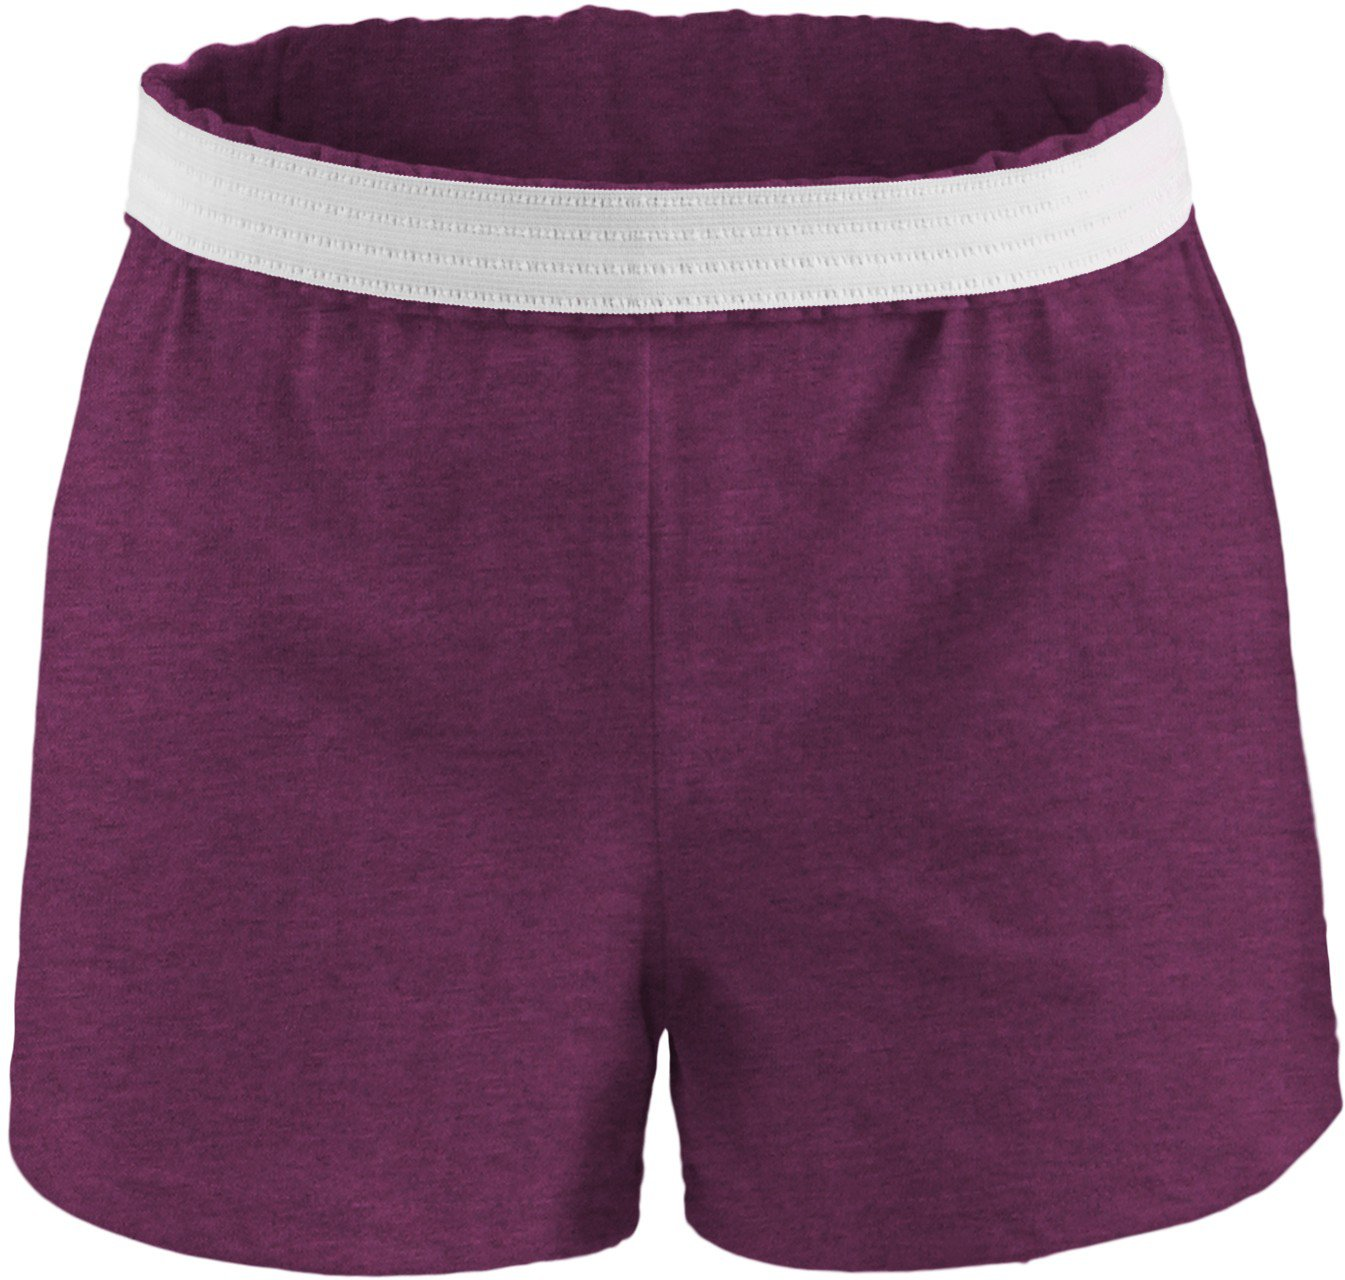 0d78e7bbcb Display product reviews for Soffe Women s Authentic Athletic Performance  Short